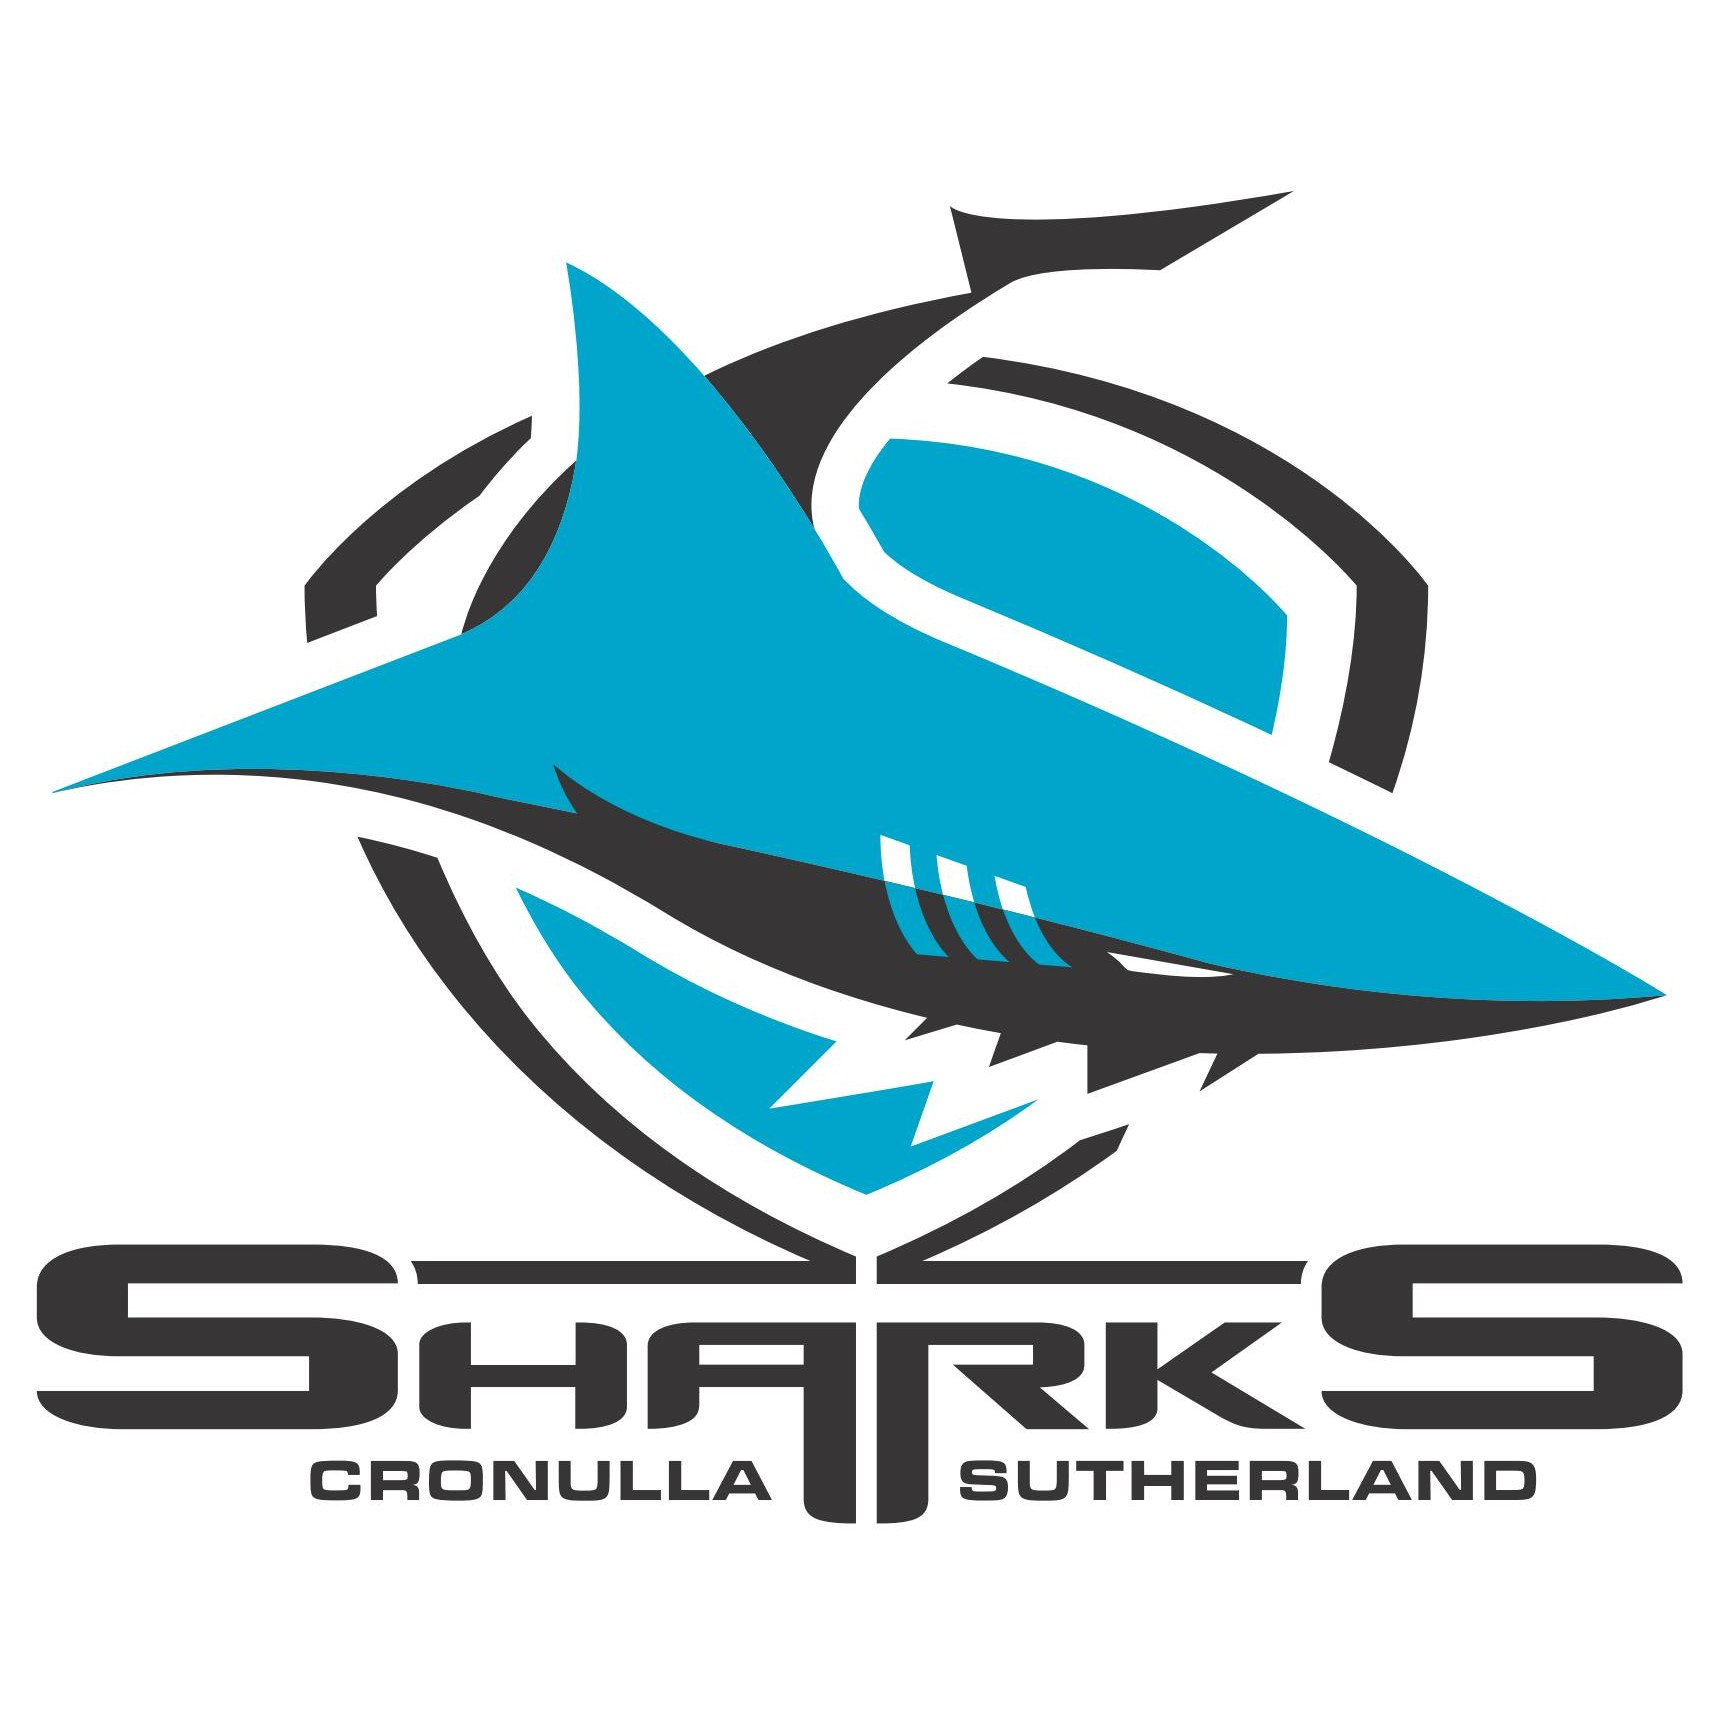 GOLD COAST TRADING CARDS Sharks rugby logo pictures